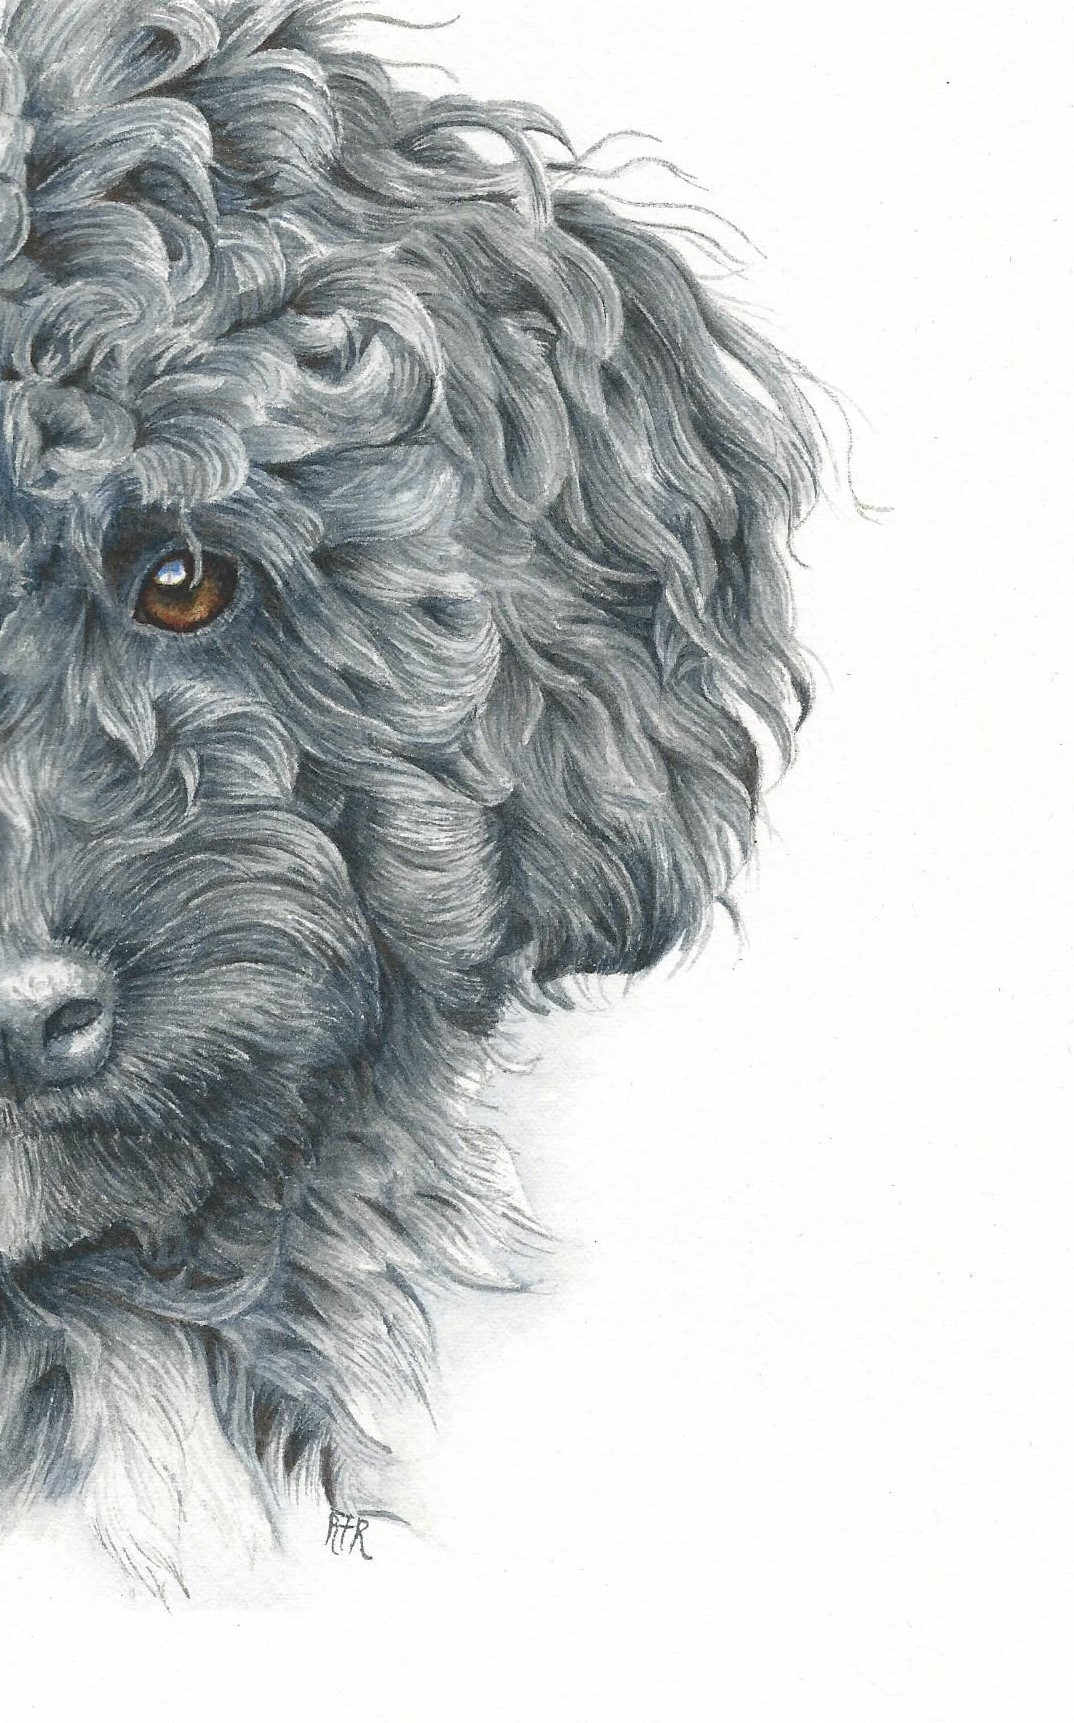 1074x1723 How To Paint A Curly Haired Poodle In Watercolor